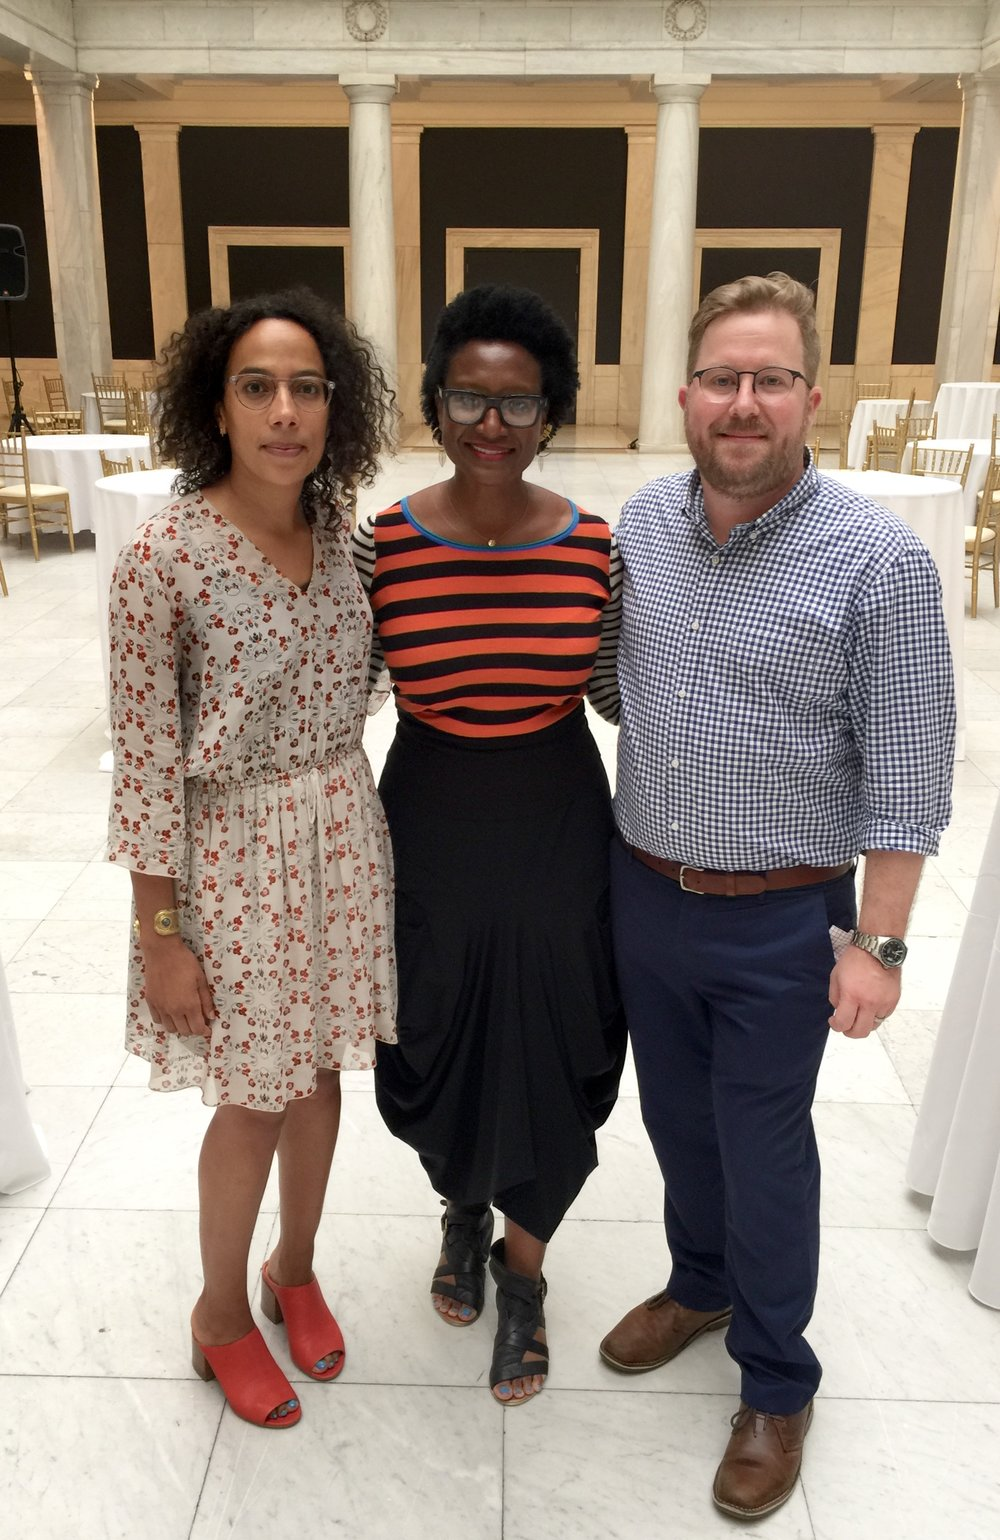 Luckett (middle) with  20/20  curators, Amanda Hunt (left) of the Studio Museum in Harlem and Eric Crosby (right) of the Carnegie Museum of Art. Courtesy of Kilolo Luckett.